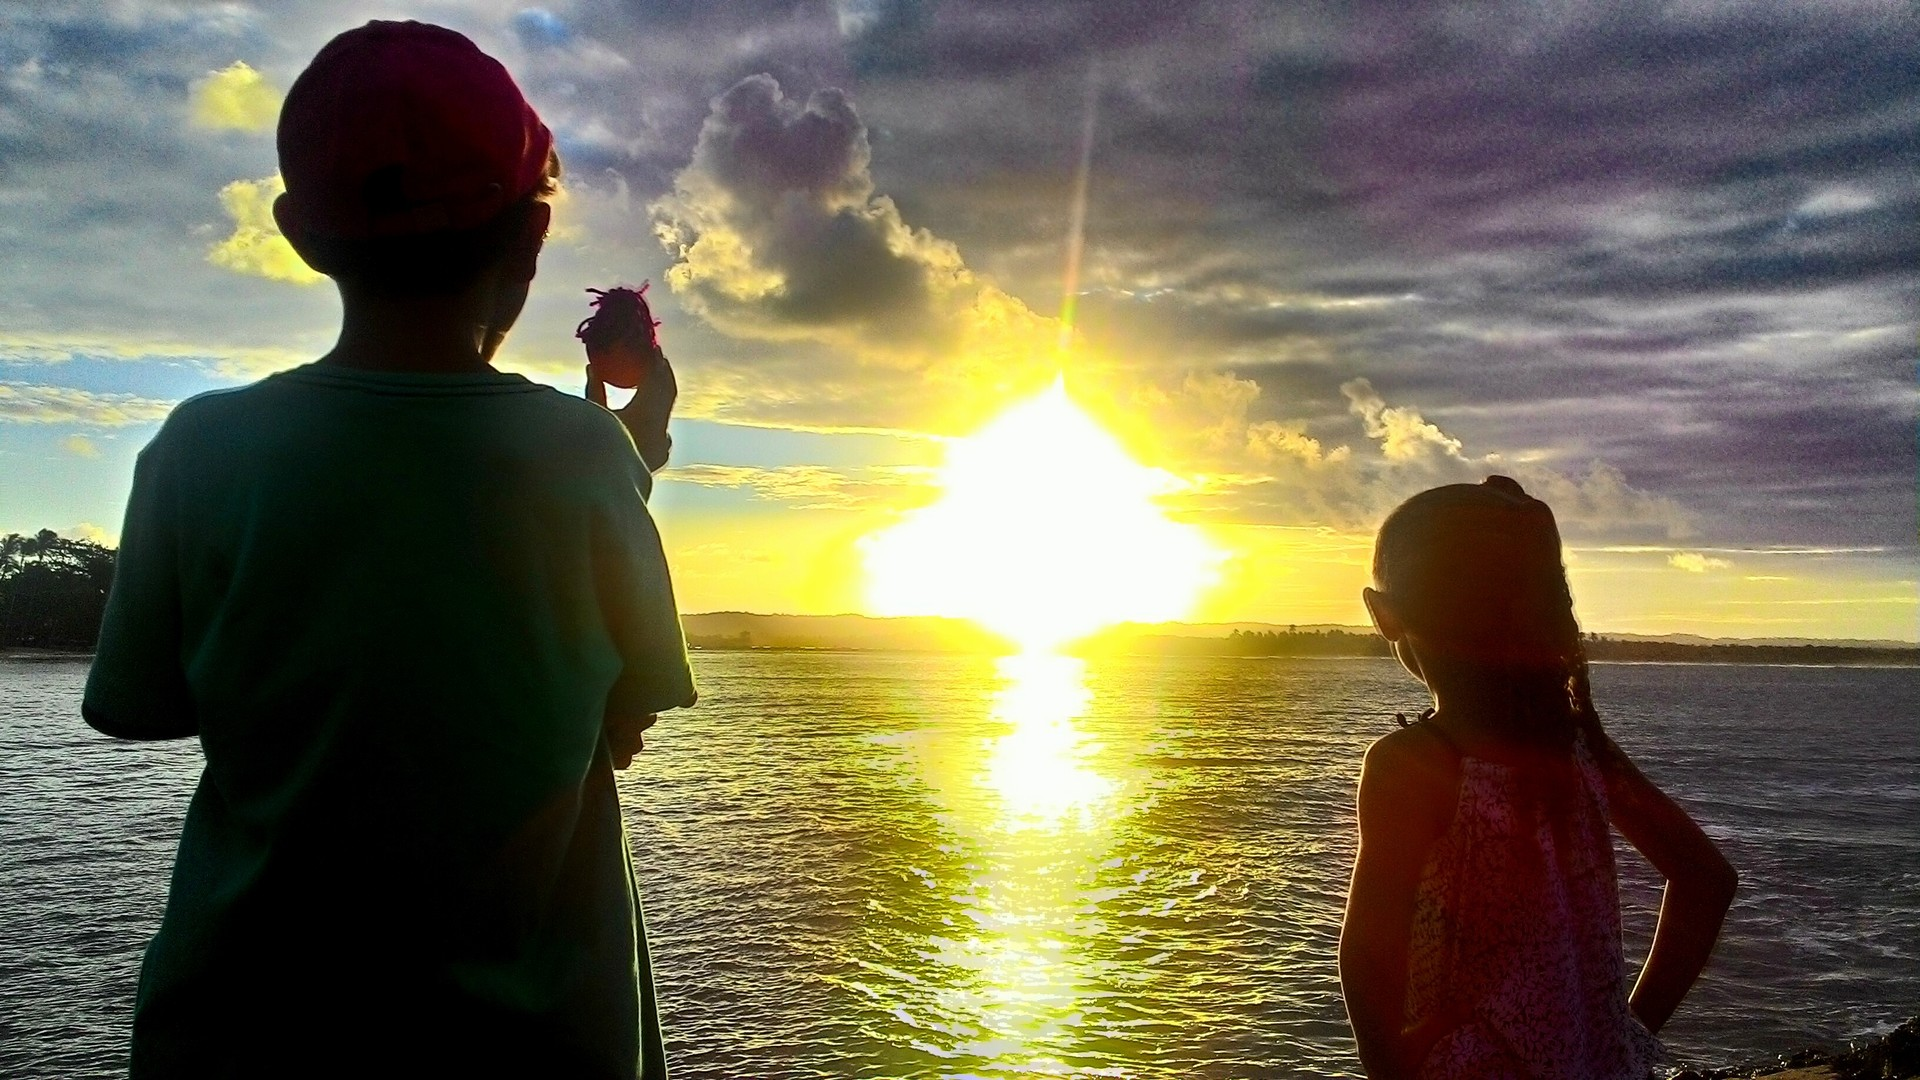 Sunset over sea with kids